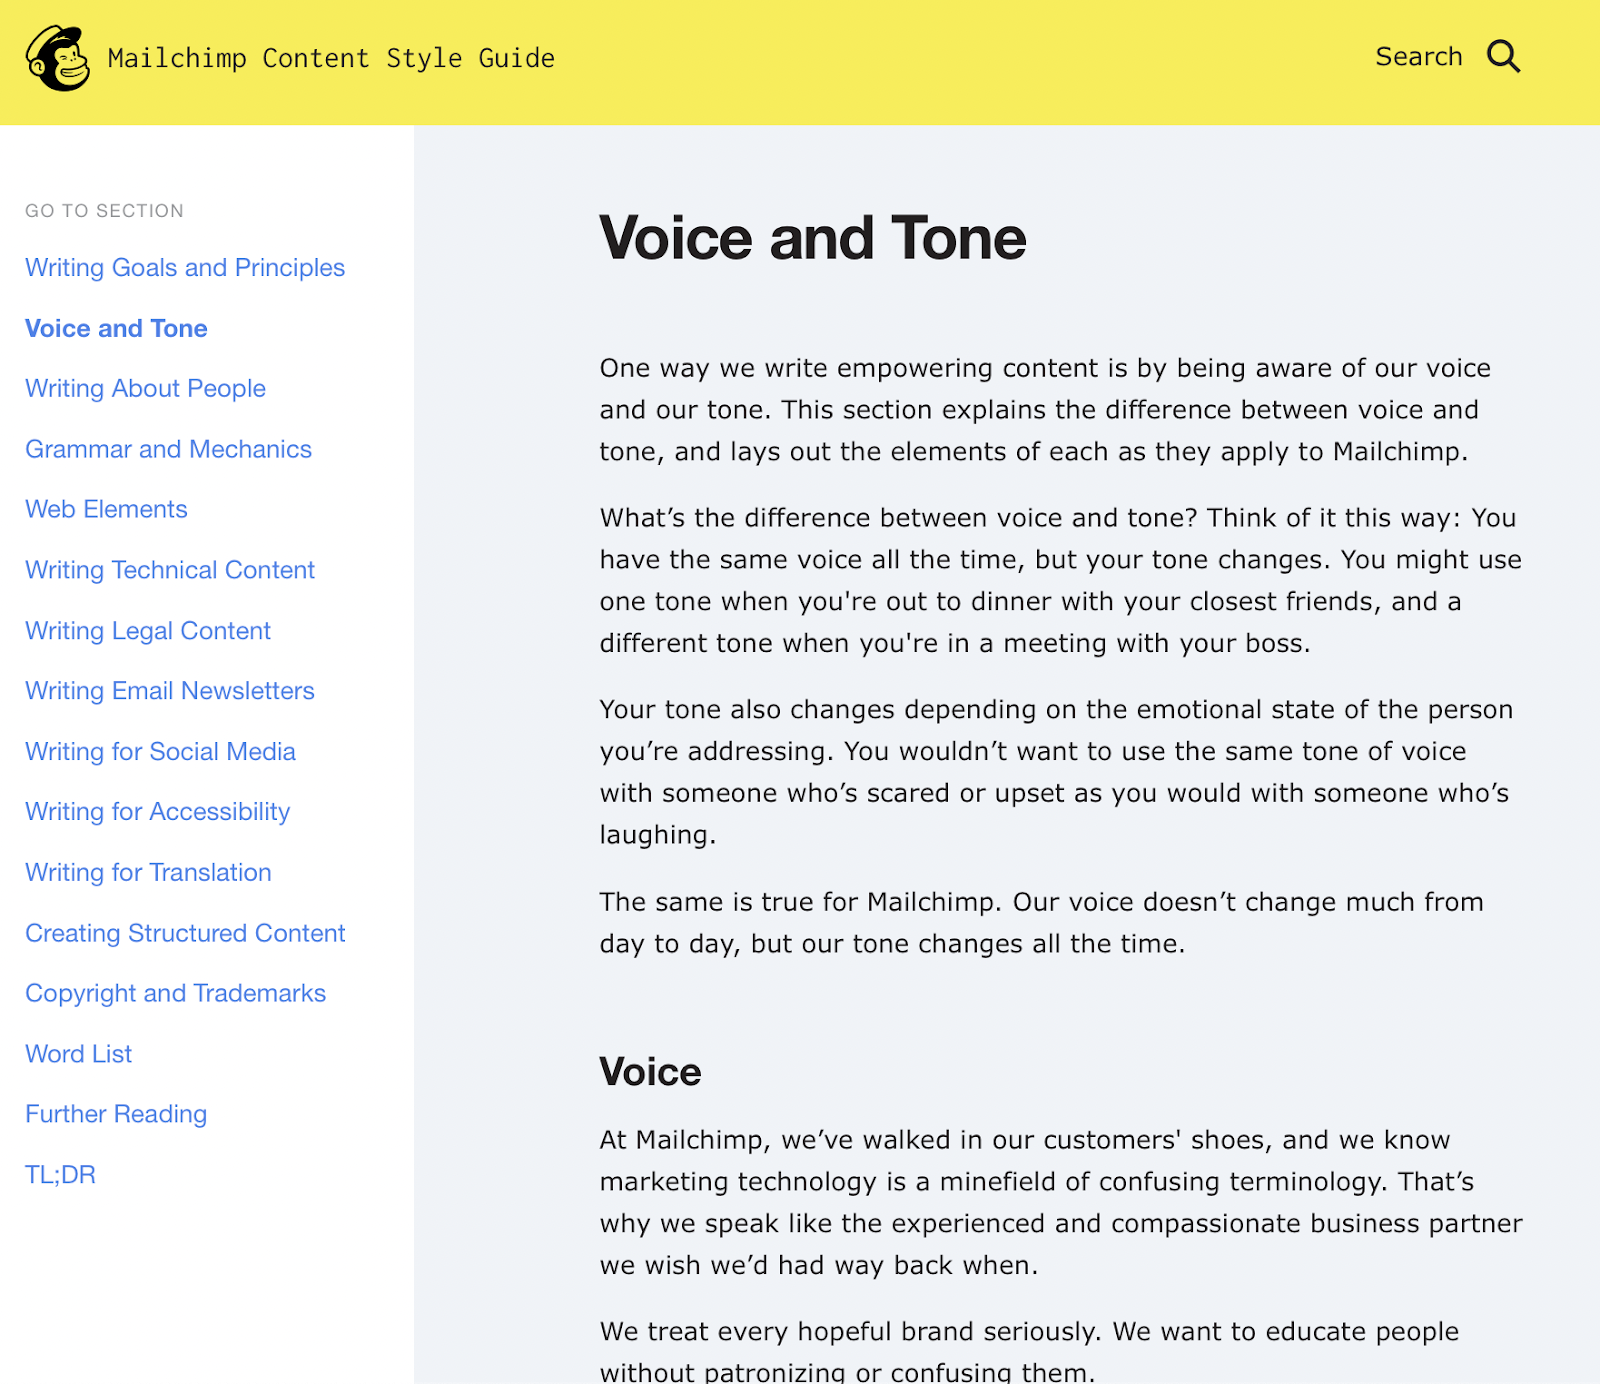 Voice and Tone Example from Mailchimp